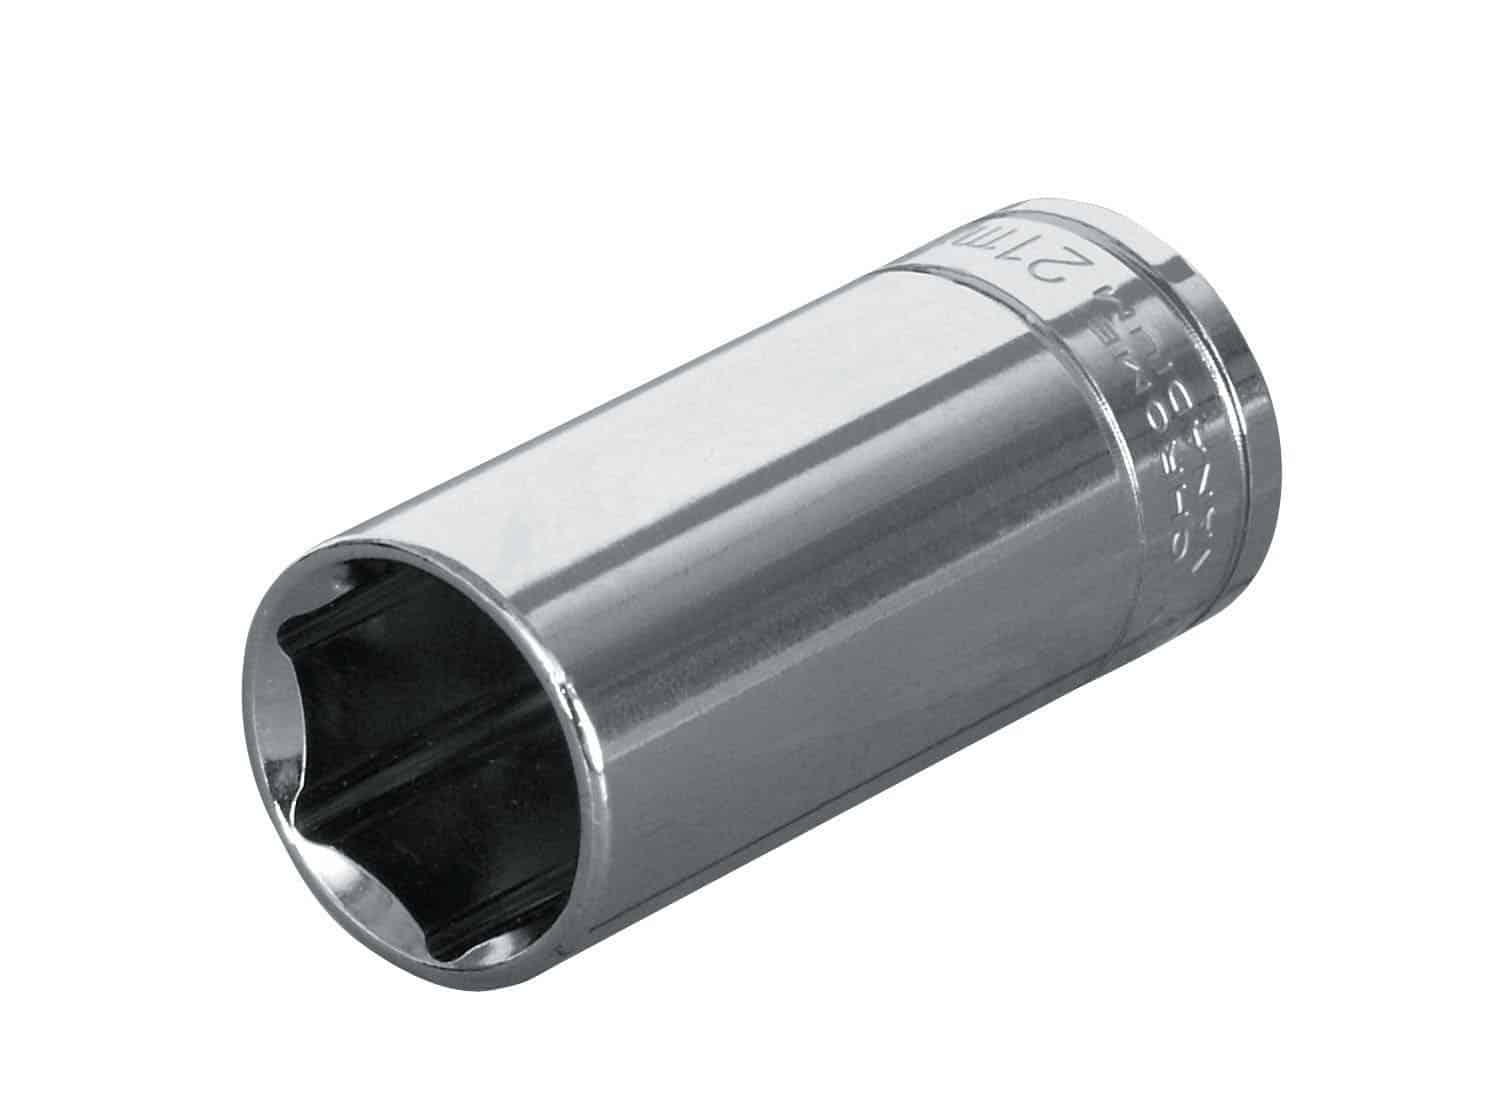 "EXPERT E030218 - 1/4"" Square Drive Metric Long 12Pt Socket 8mm"